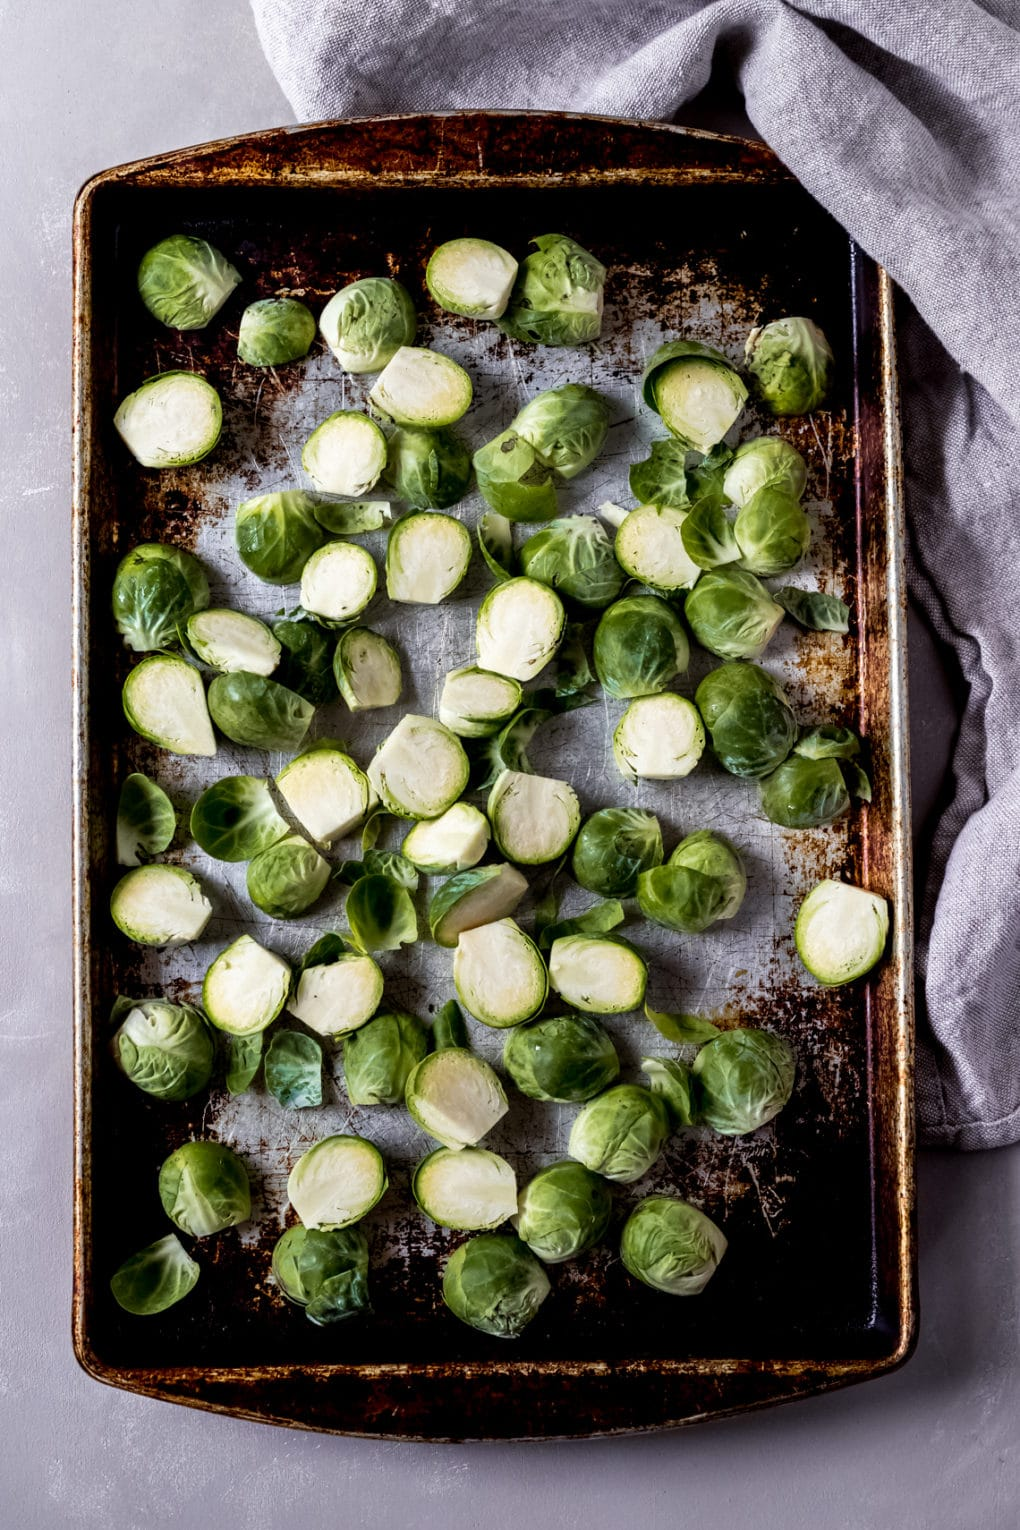 a baking sheet with raw brussel sprouts